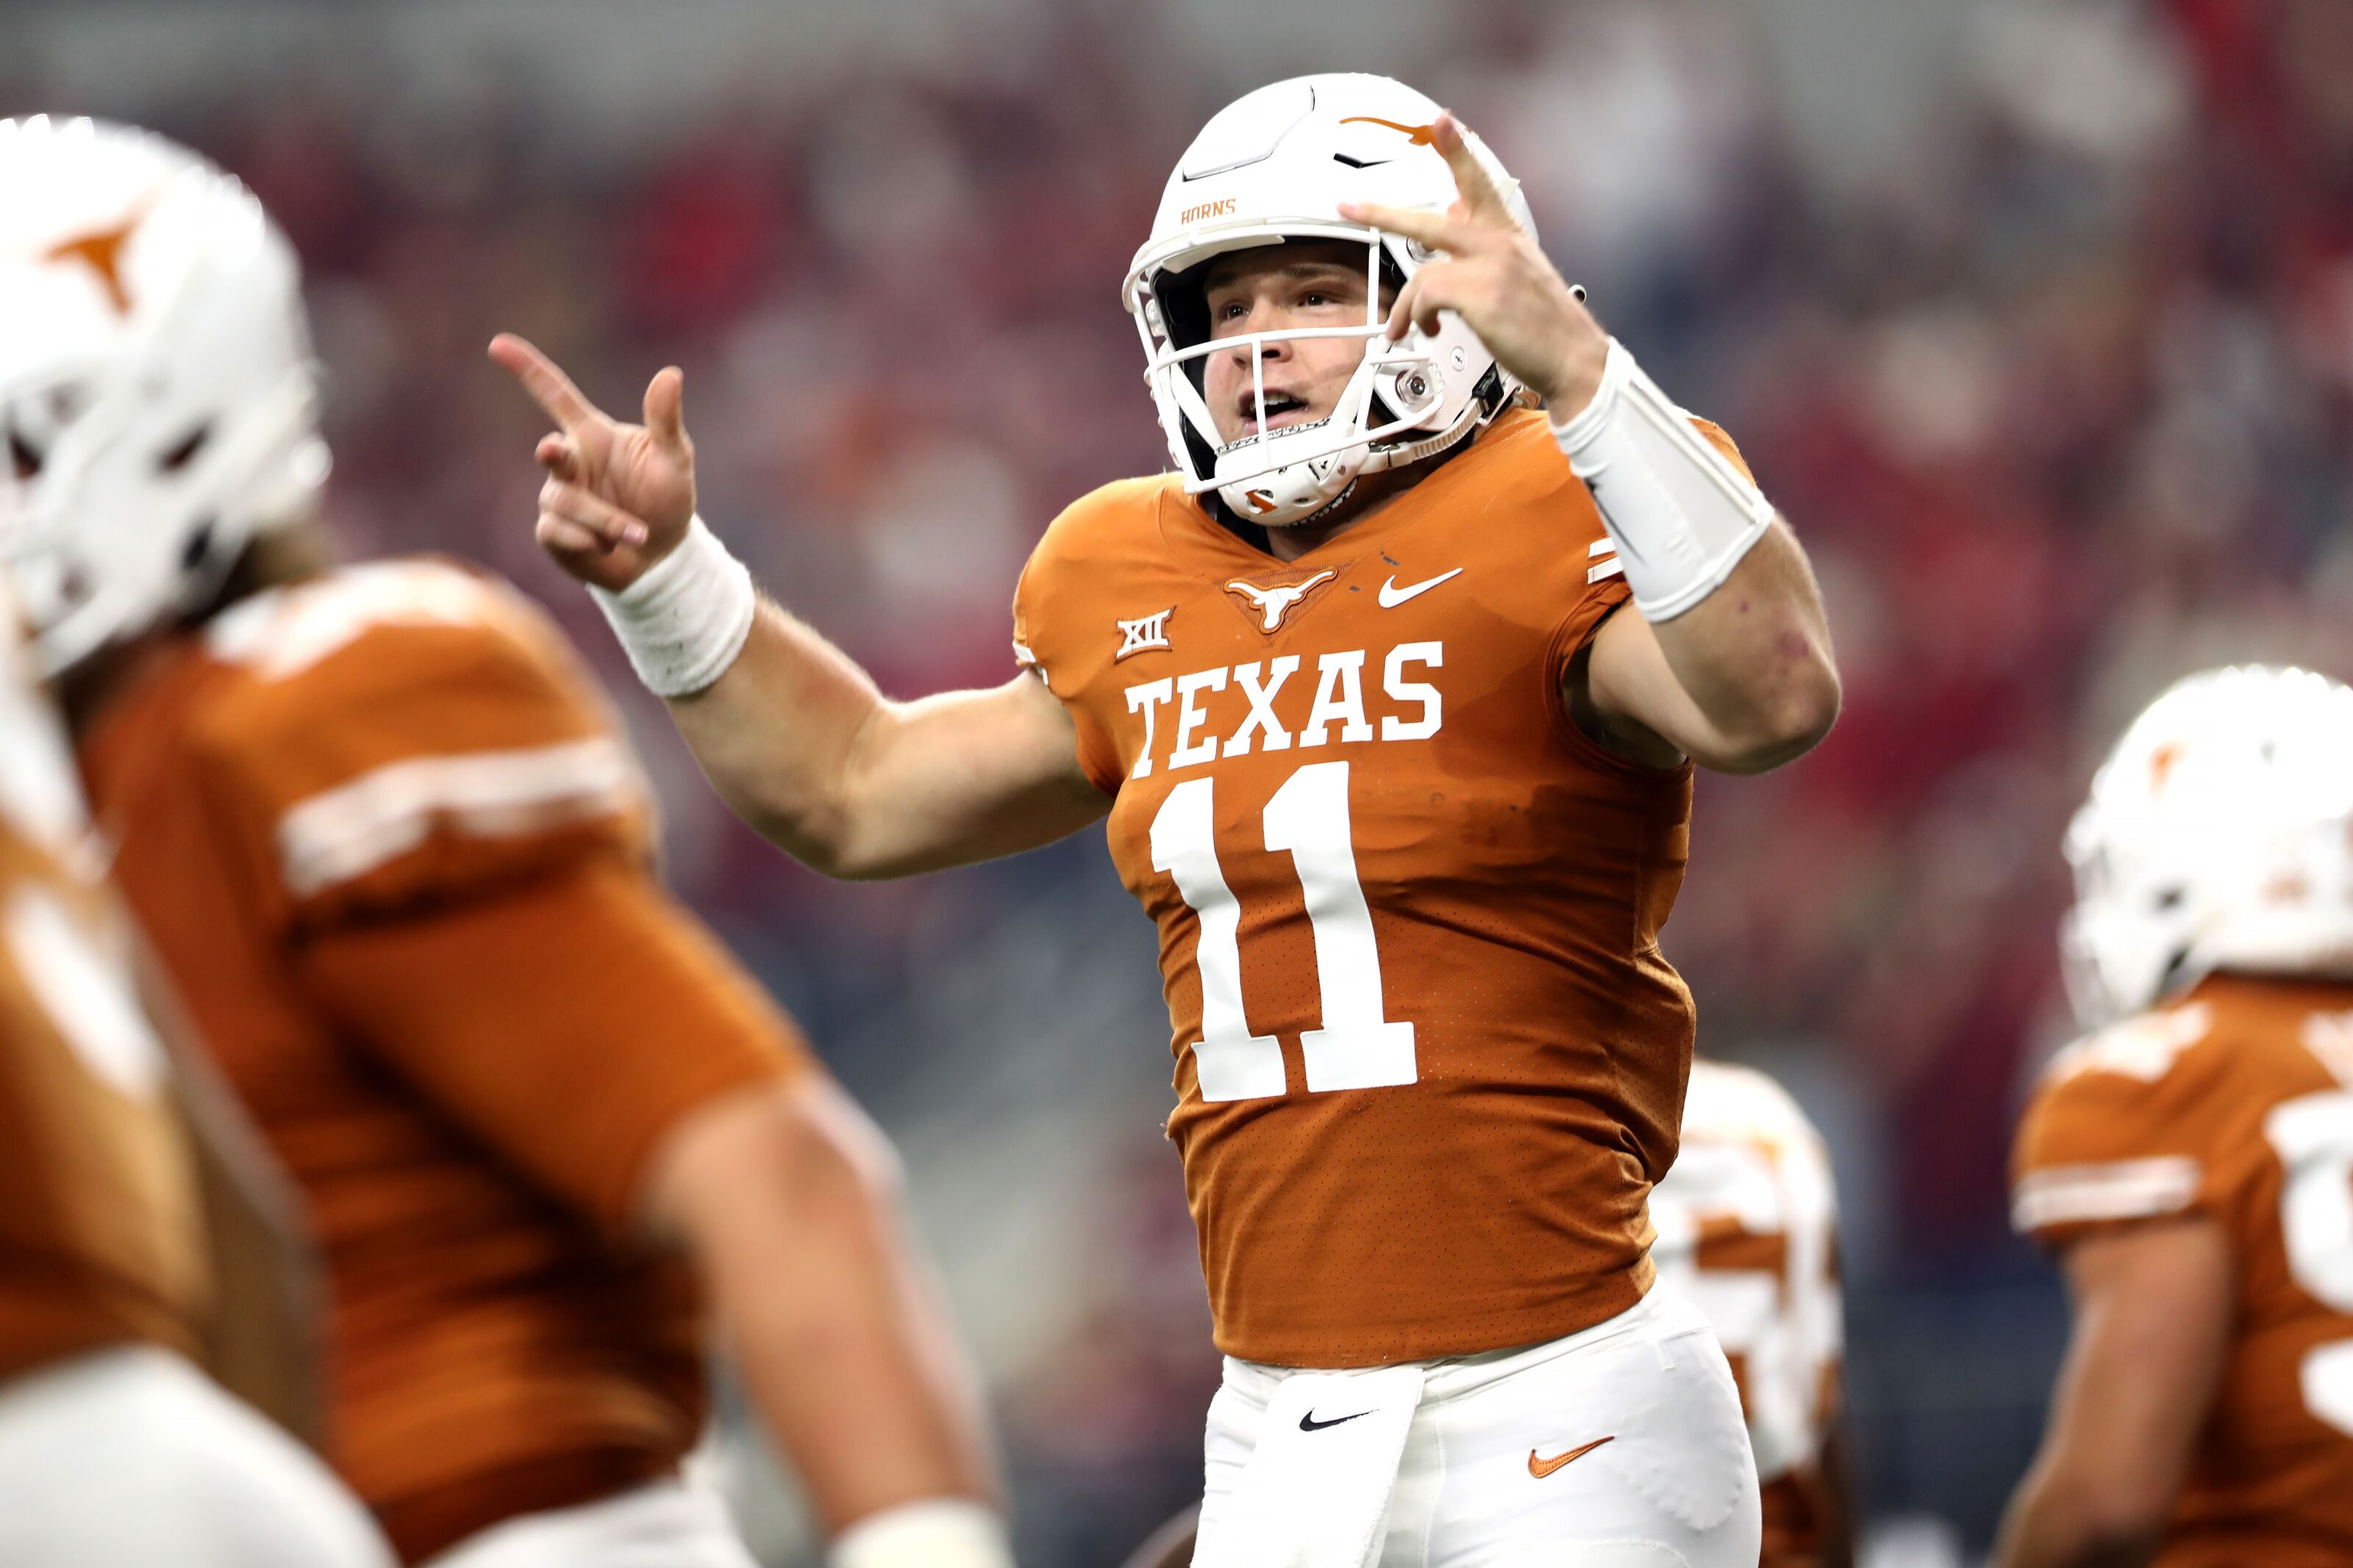 Texas' Sam Ehlinger puts Tim Tebow comparisons to the test vs. LSU